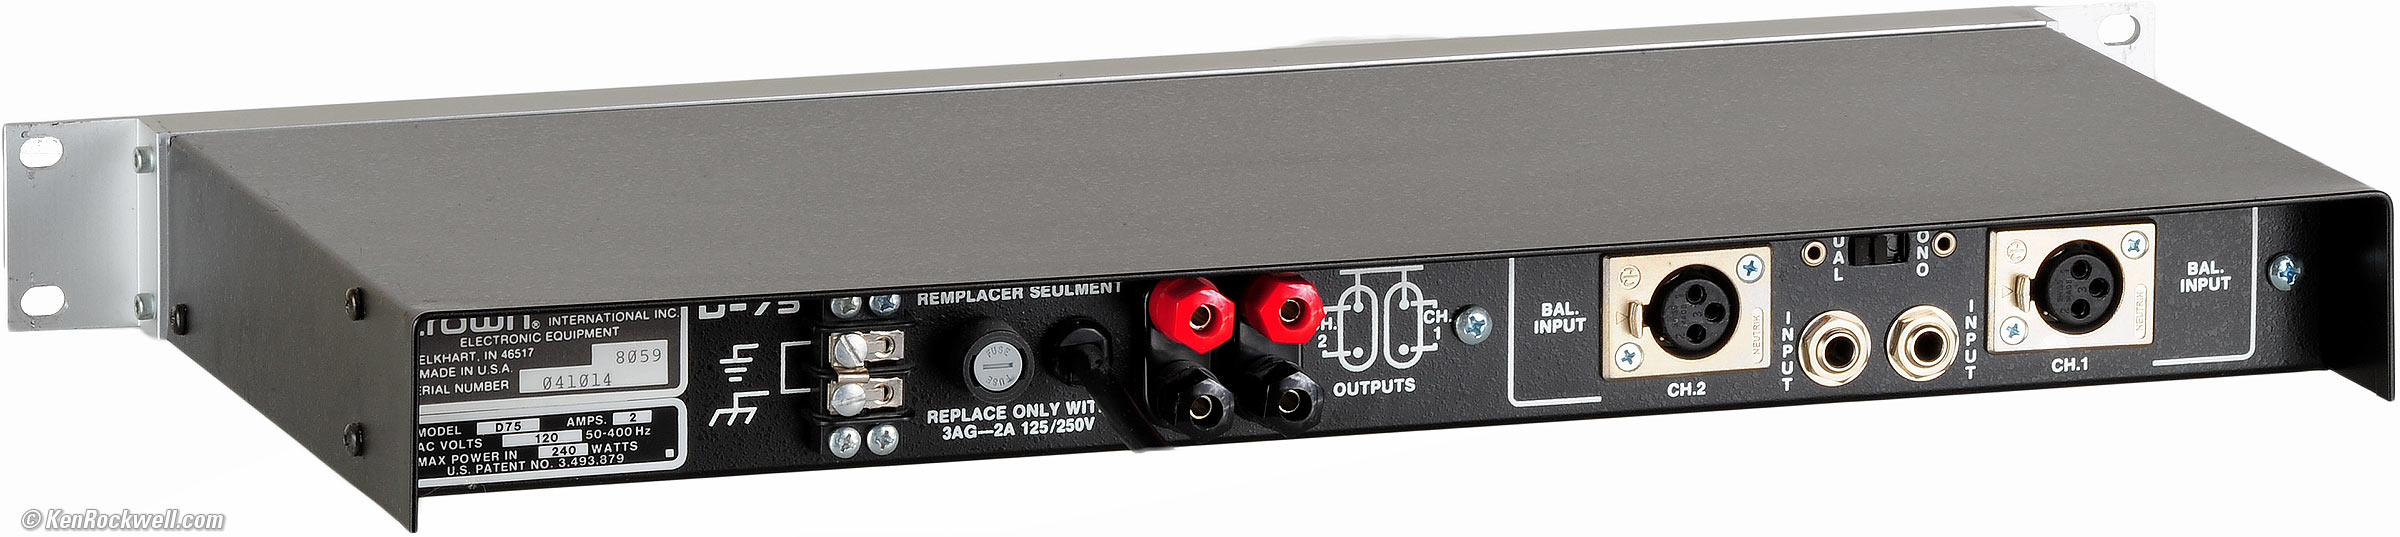 Crown Amplifiers Crown D 75 Review